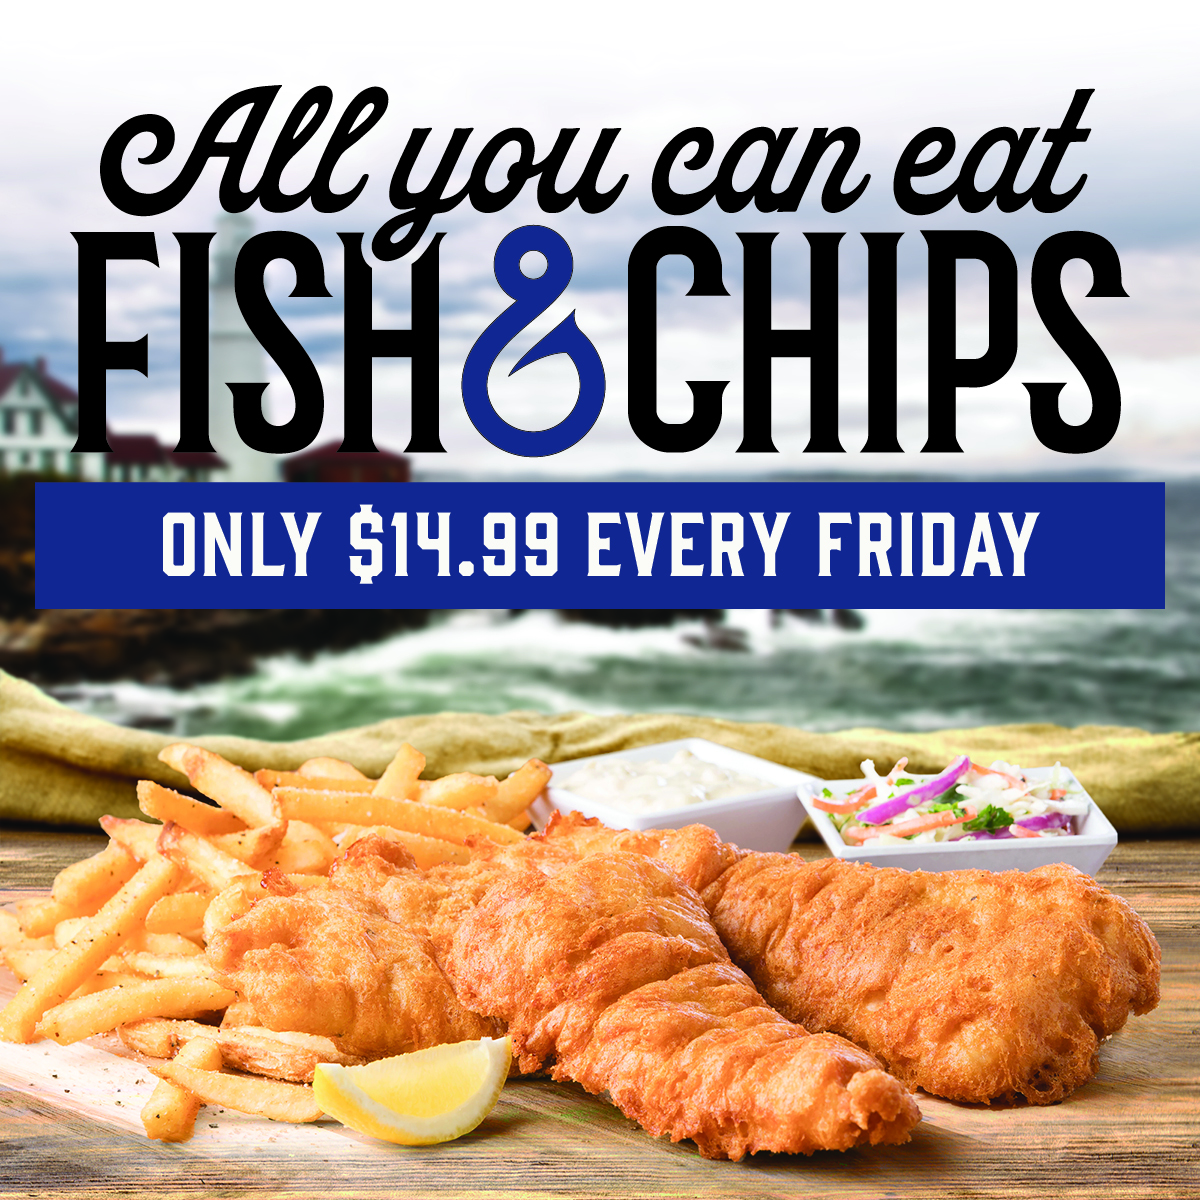 all you can eat fish and chips every Friday for only $14.99